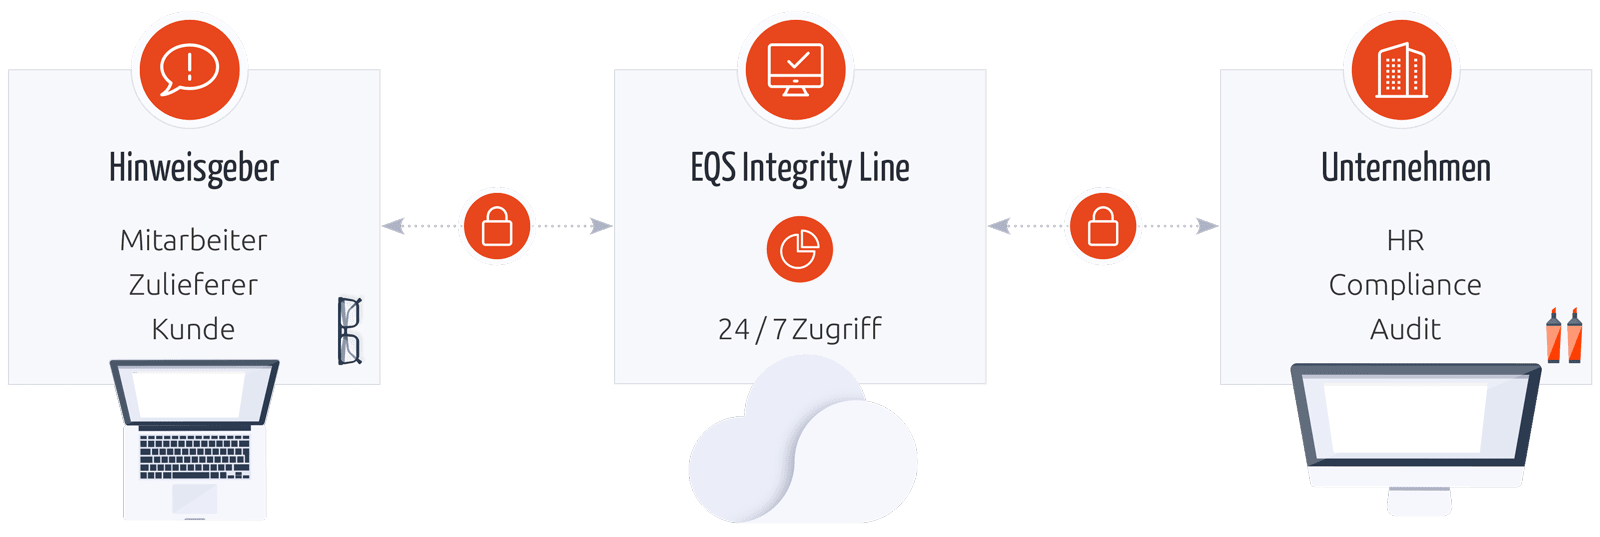 EQS Integrity Line workflow